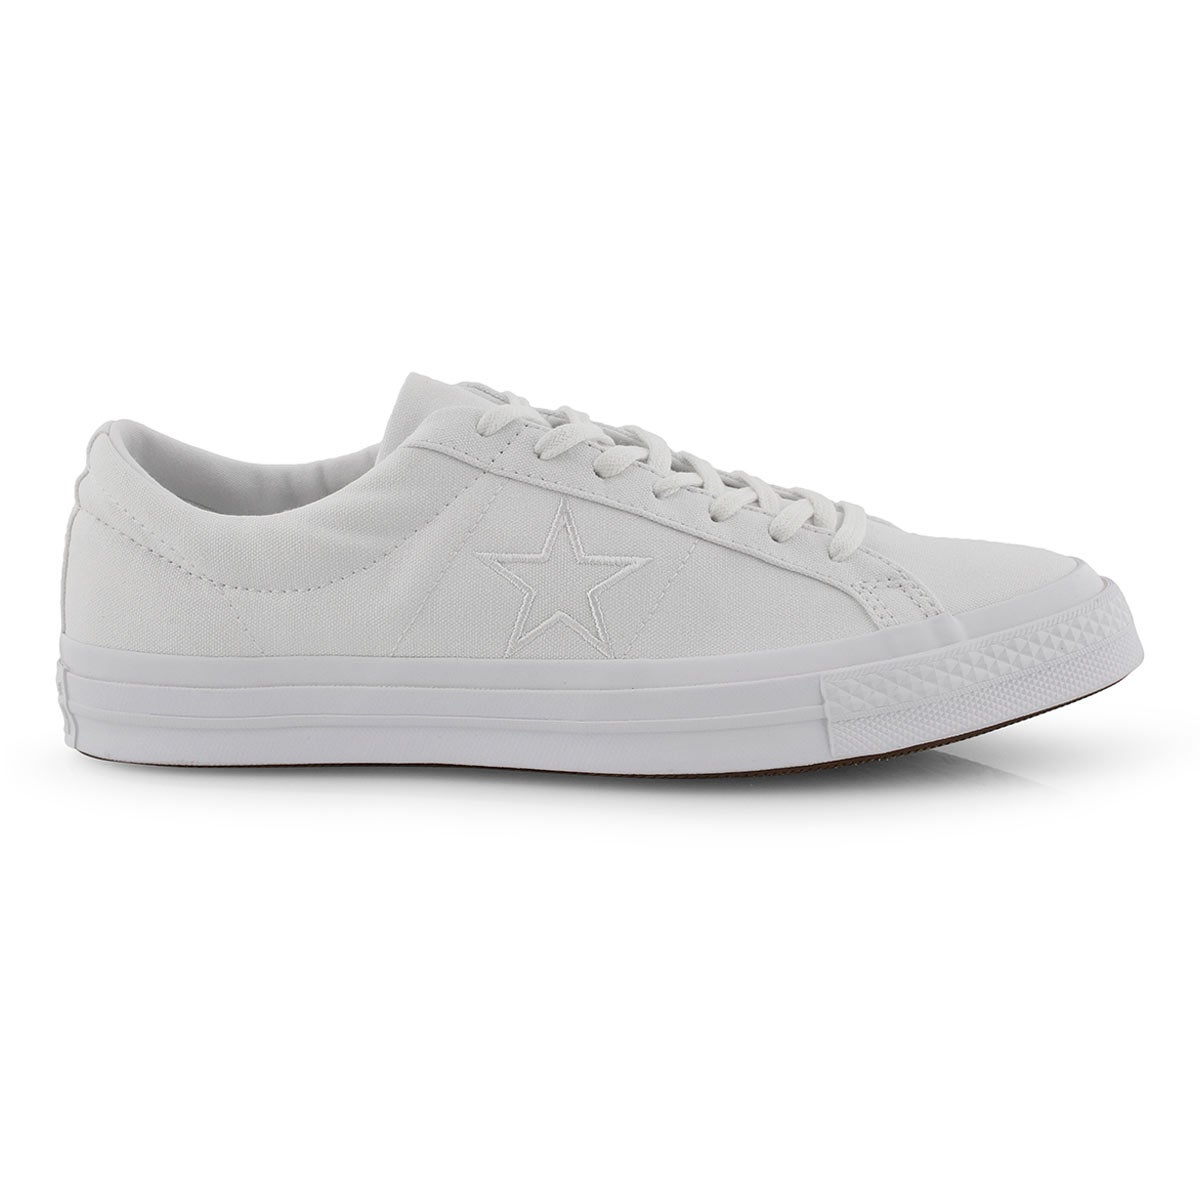 Mns One Star wht/wht fashion snkr